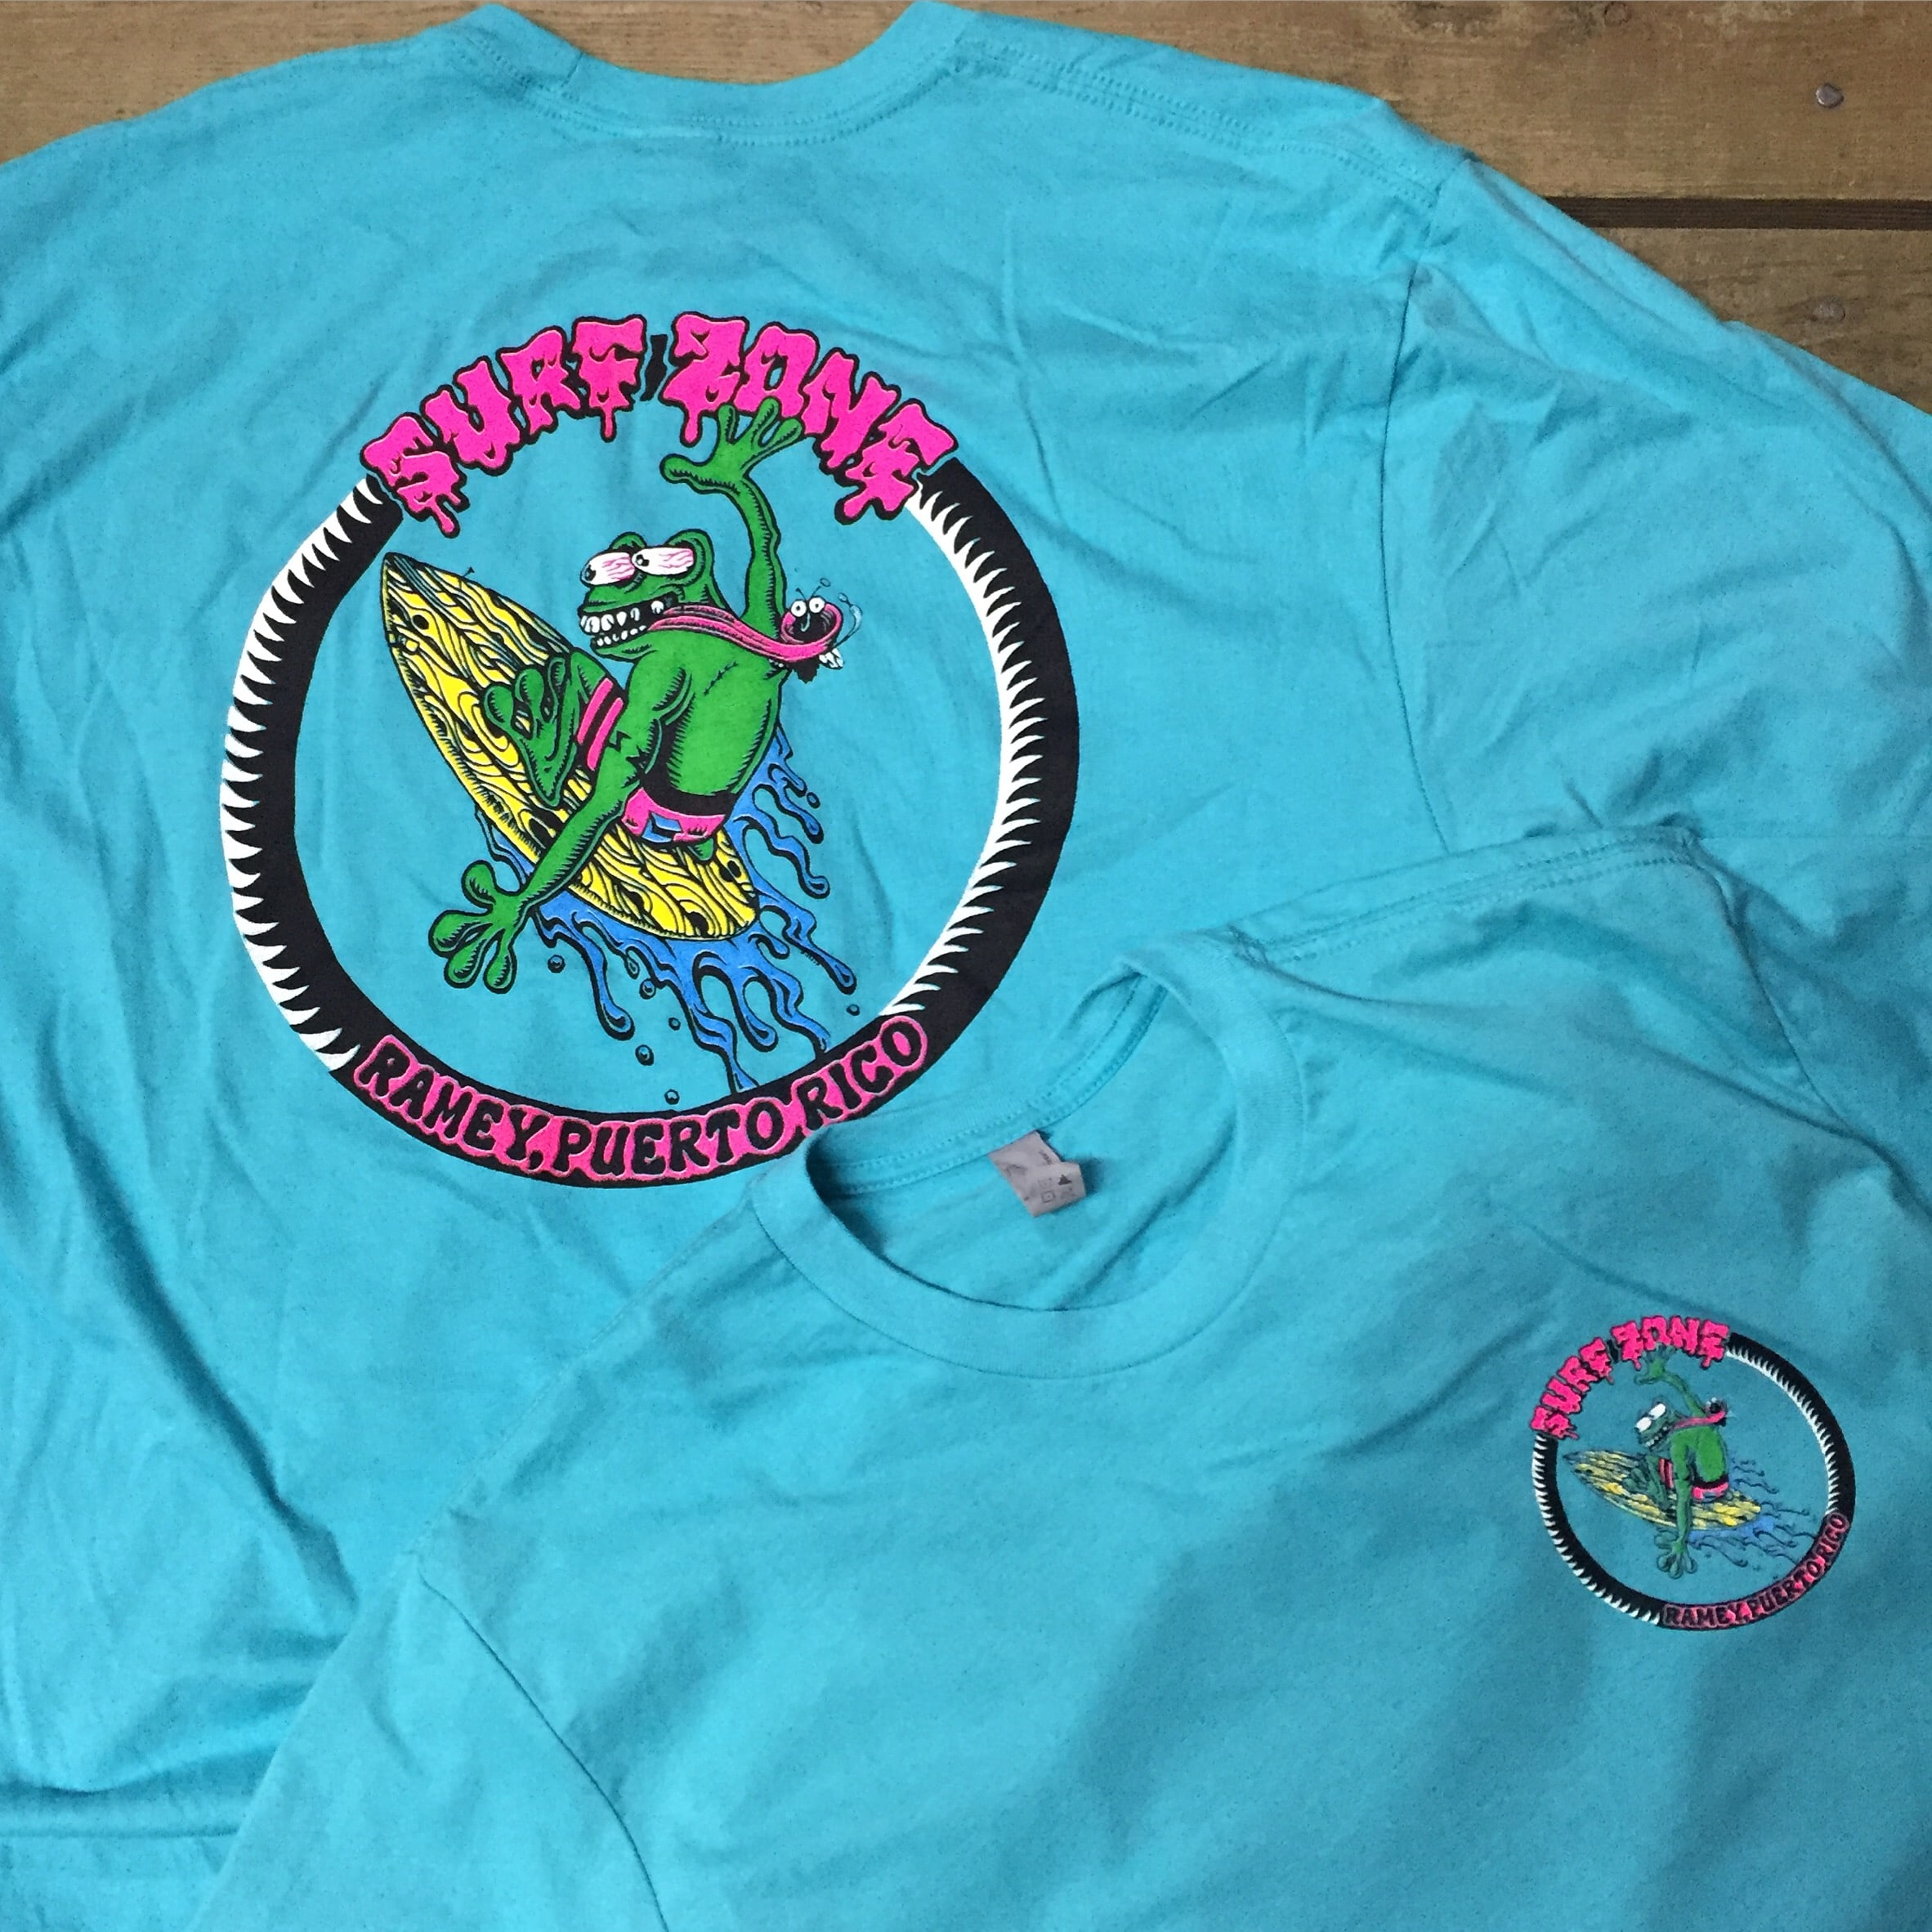 Get your dad a surf zone shirt!